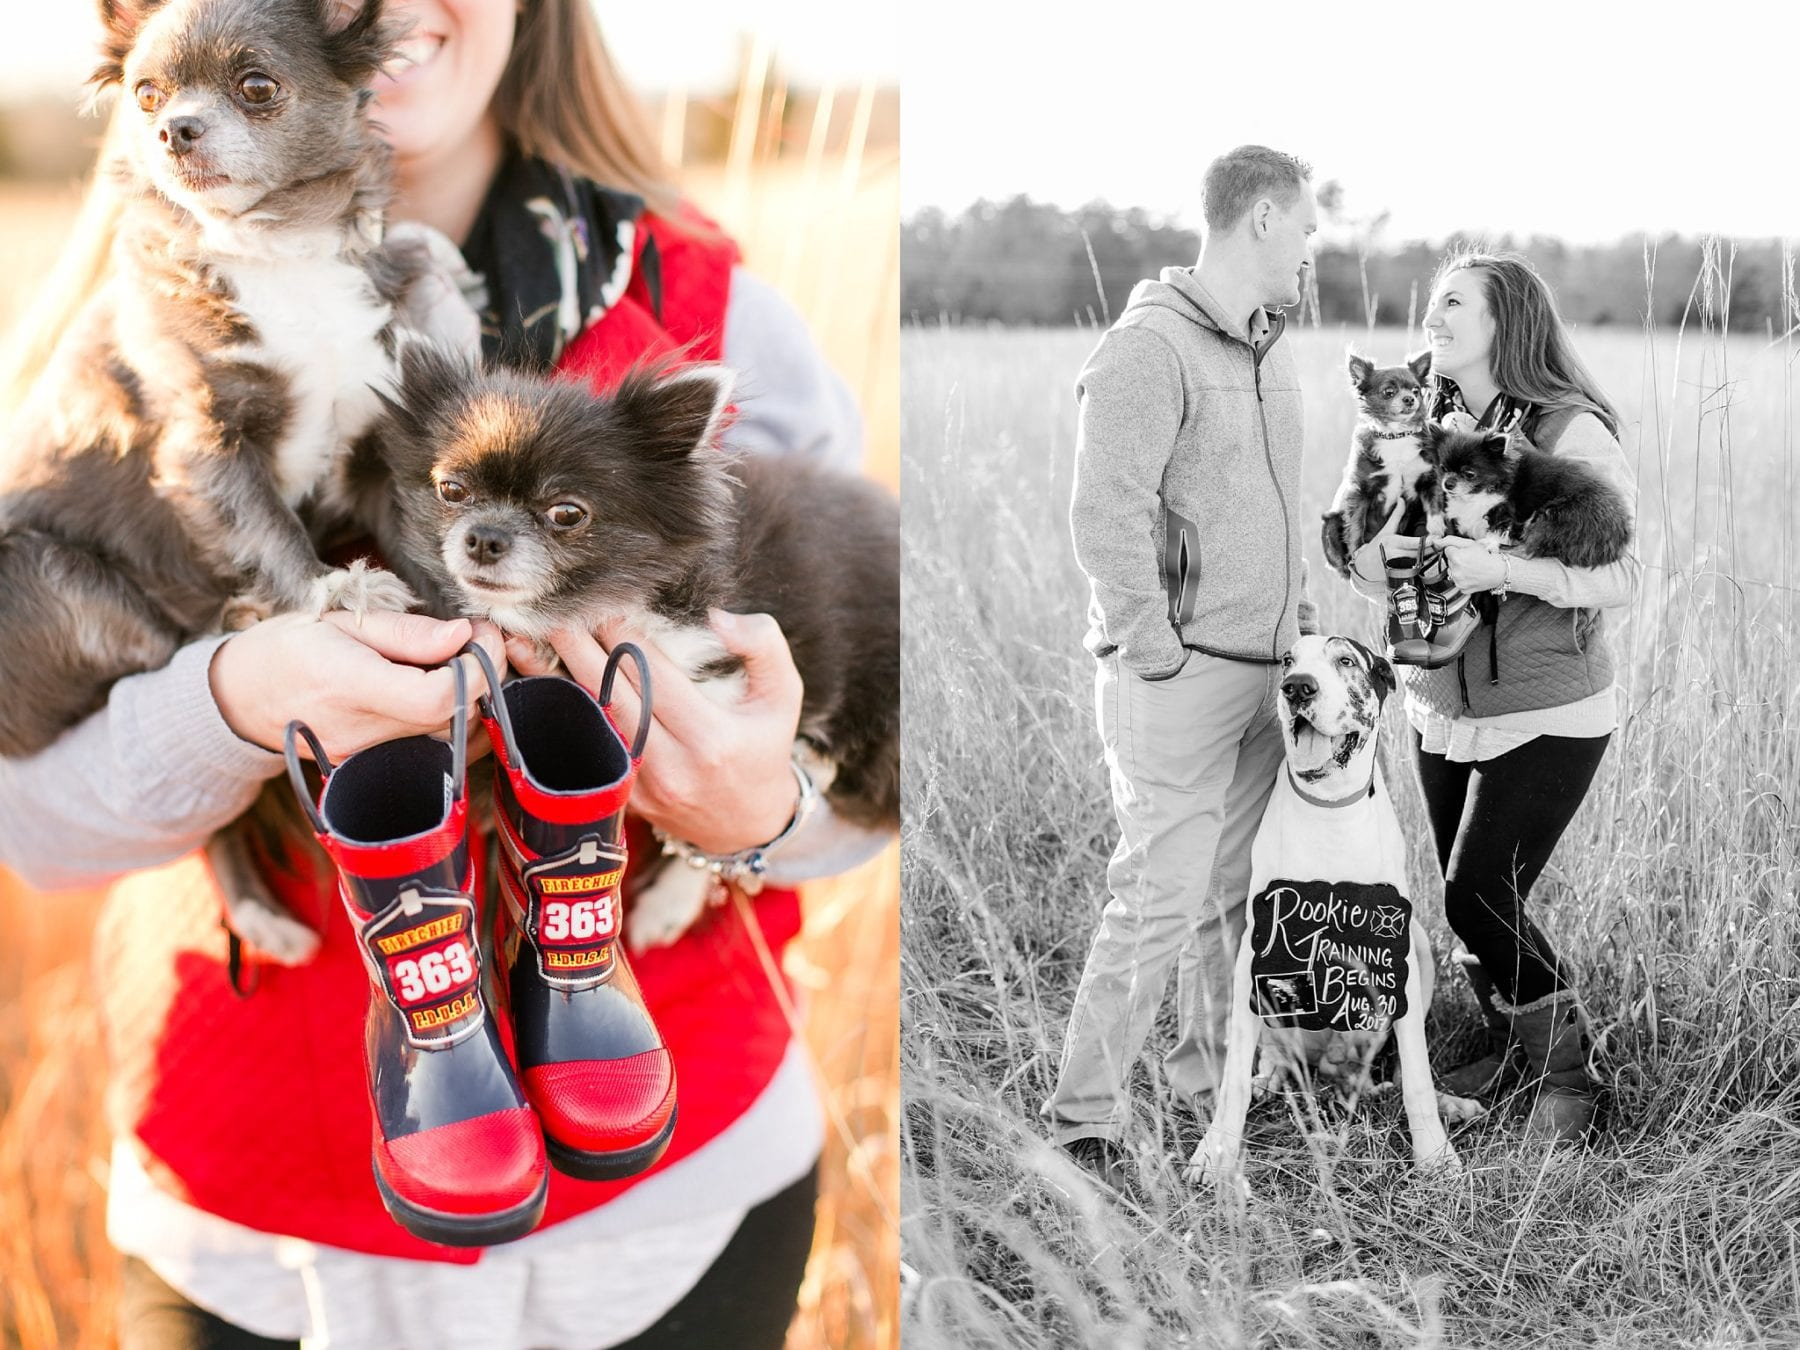 Firefighter Baby Announcement Virginia Photographer Megan Kelsey Photography Jeromy & Becky-116.jpg